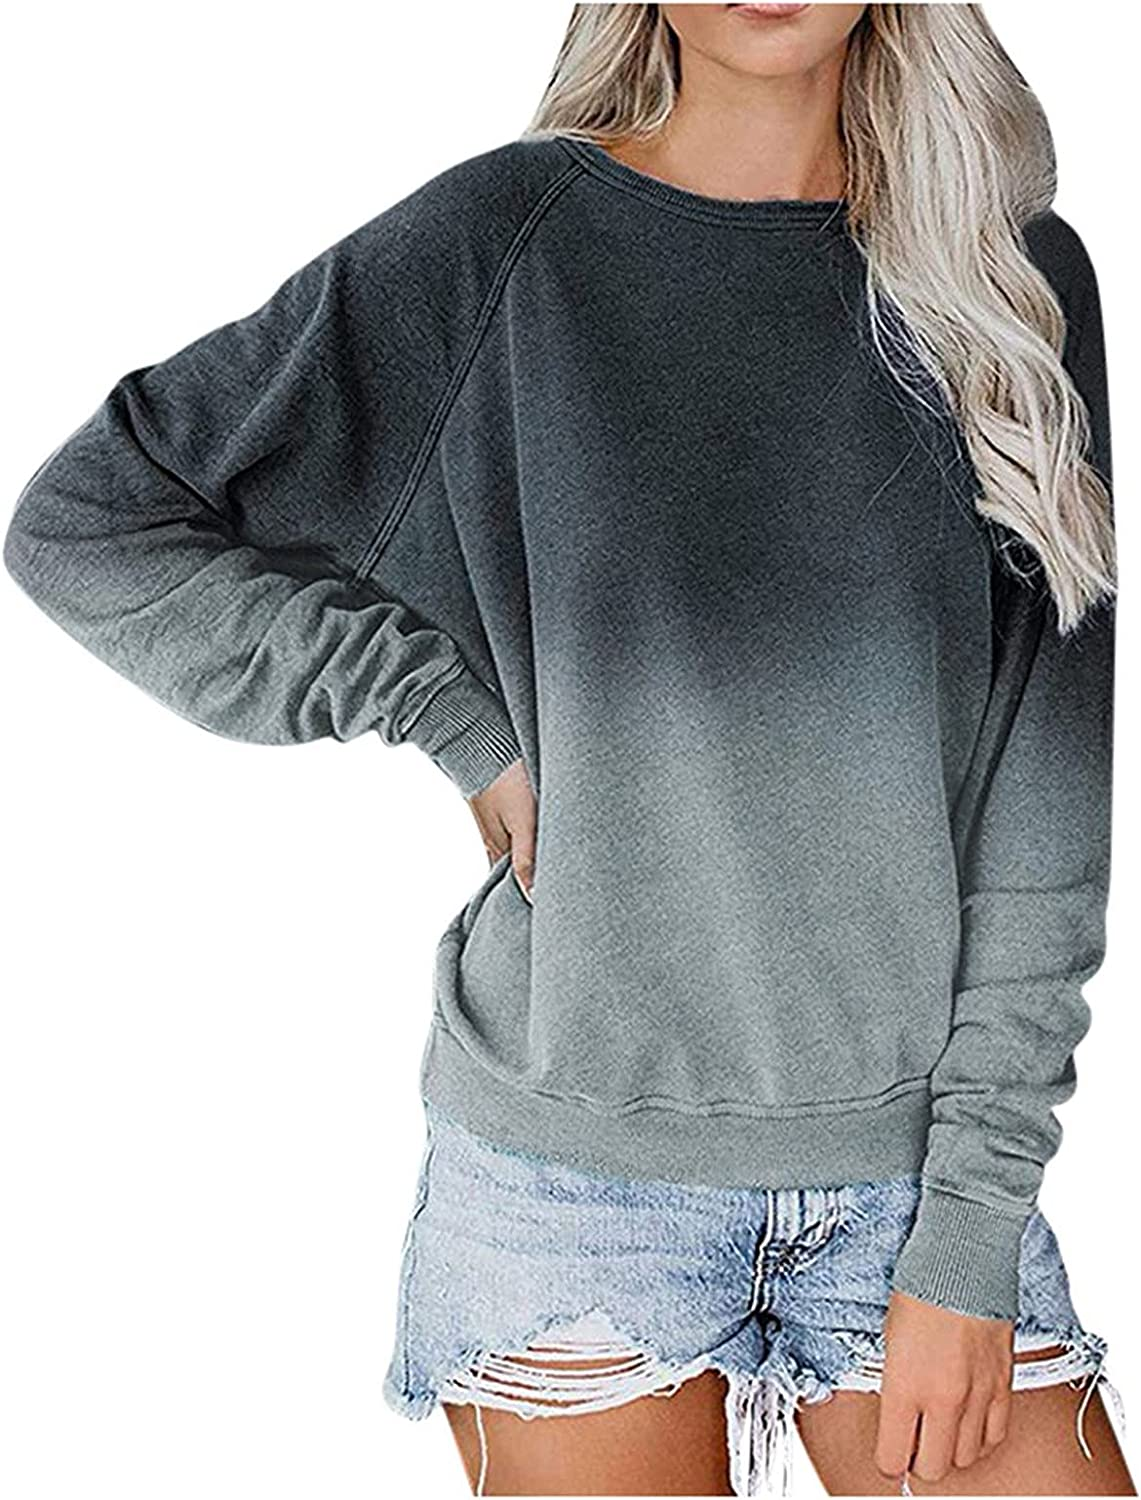 Nyybw Shirts for Women Casual Loose Fit Tunic Top Baggy Batwing Sleeve Tee Shirt Cute Comfy Round Neck Pullovers Sweatshirts